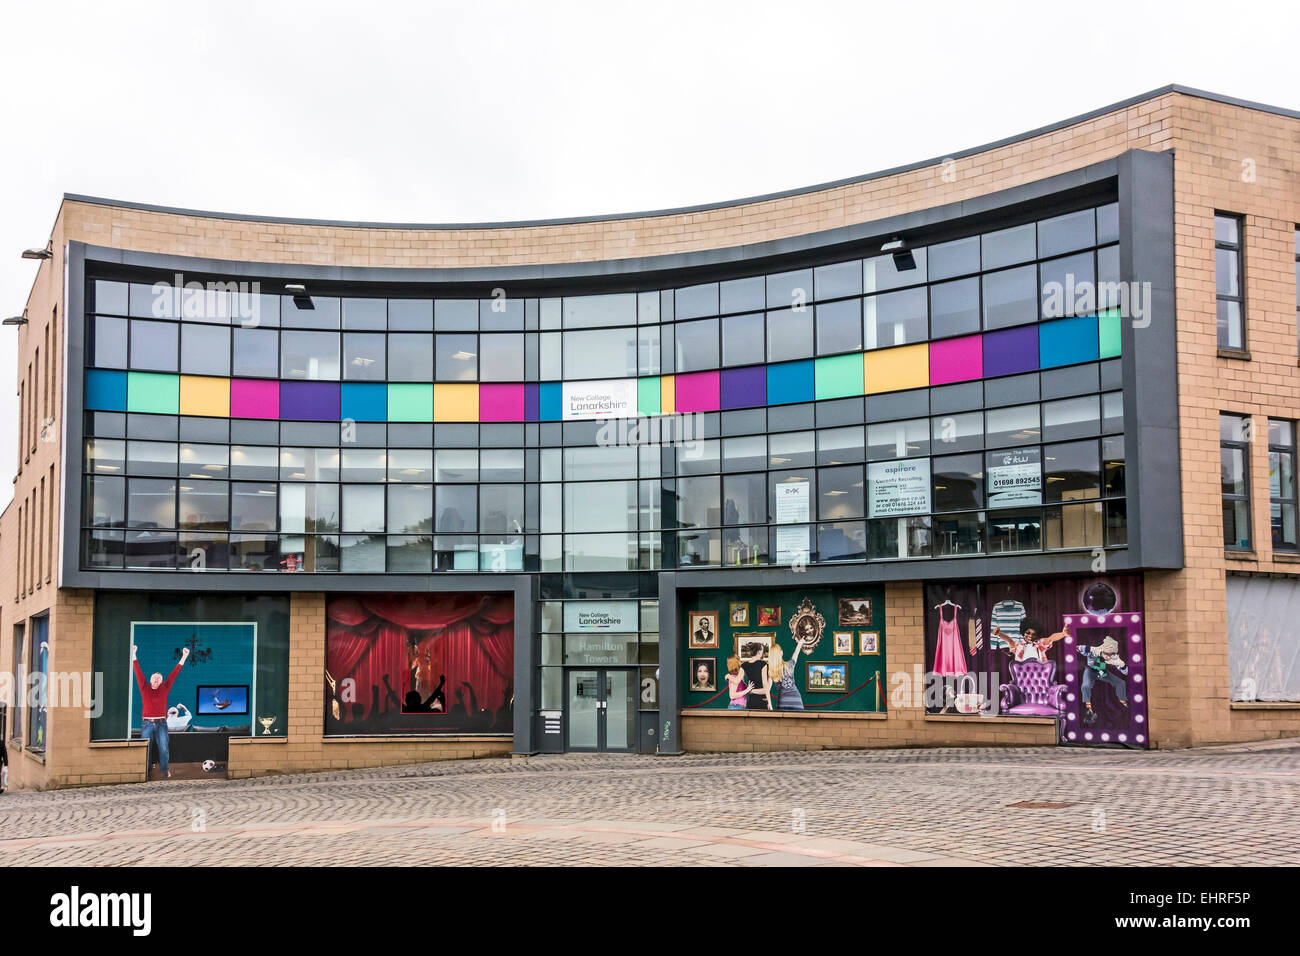 Hamilton Towers with New College Lanarkshire in Town Square Castle Street Hamilton South Lanarkshire Scotland - Stock Image